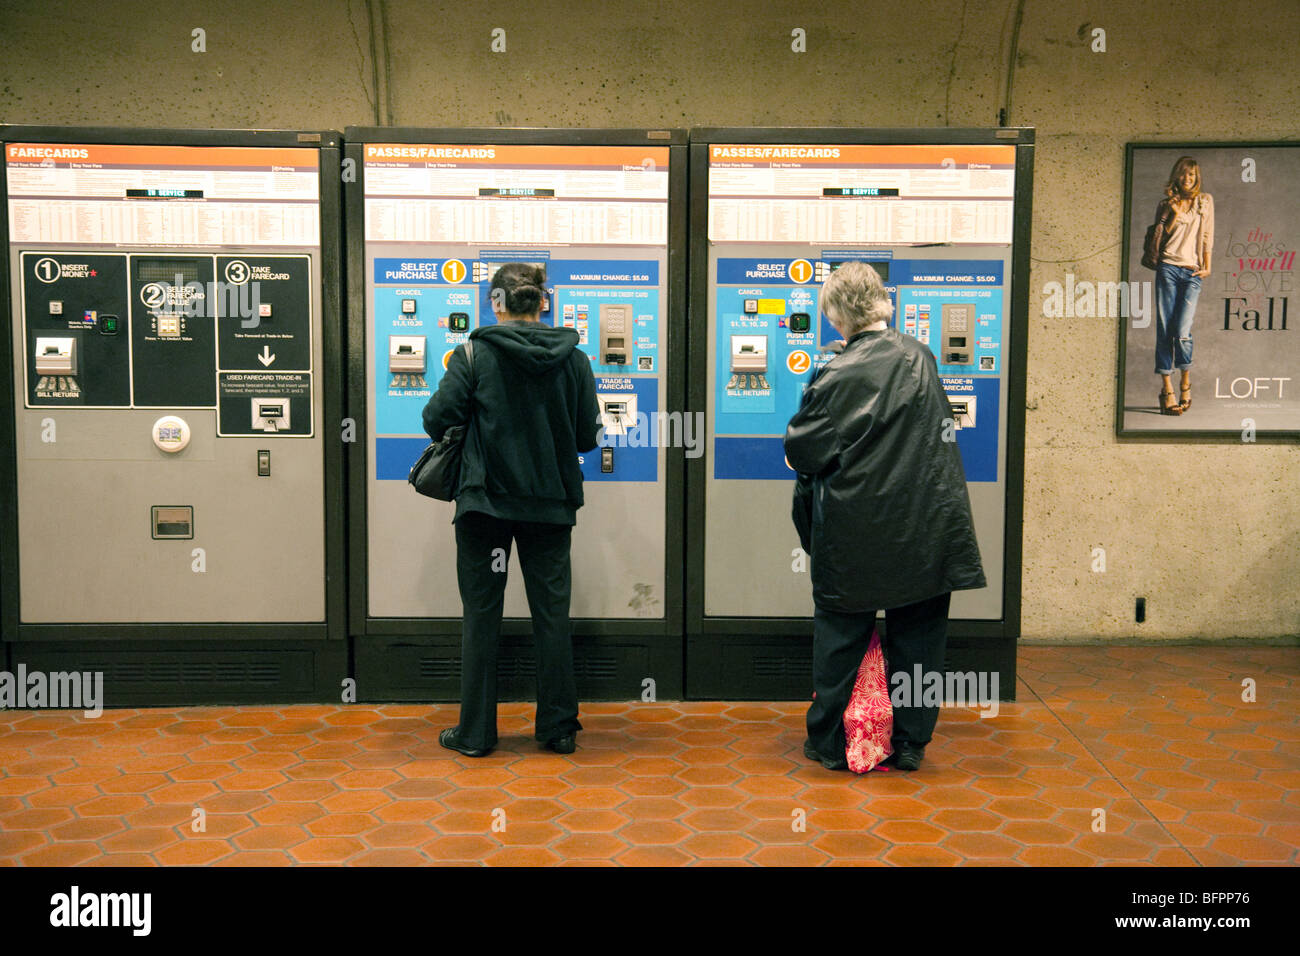 Passengers buying tickets from machines, the metrorail or metro underground rail system, Washington DC USA - Stock Image